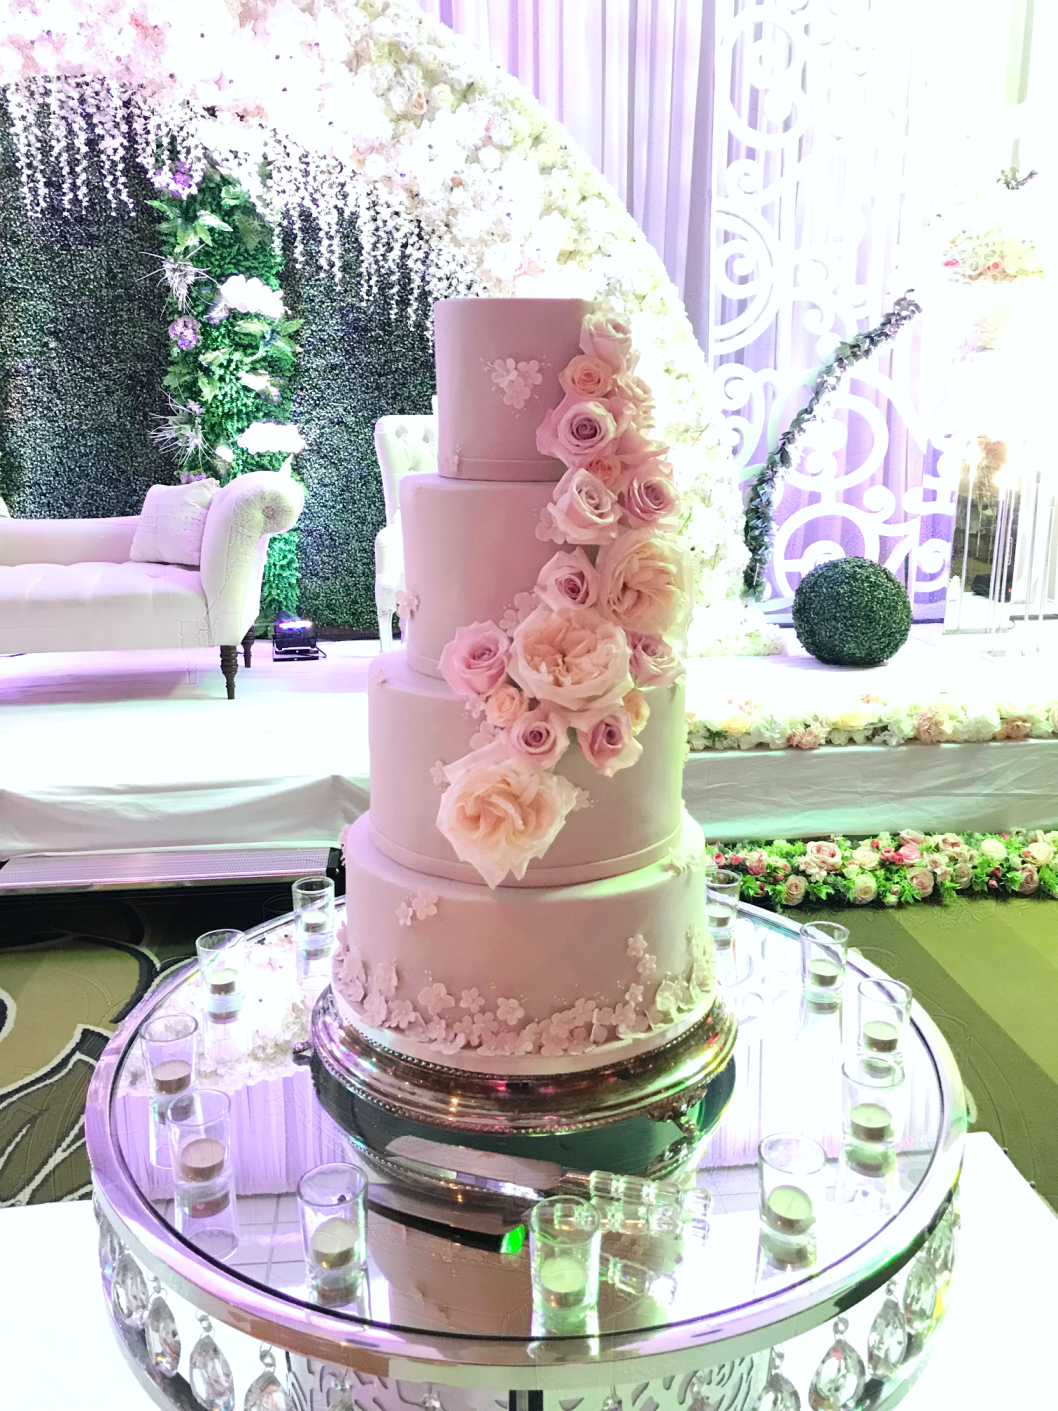 Whippt Desserts - wedding cake May 2018